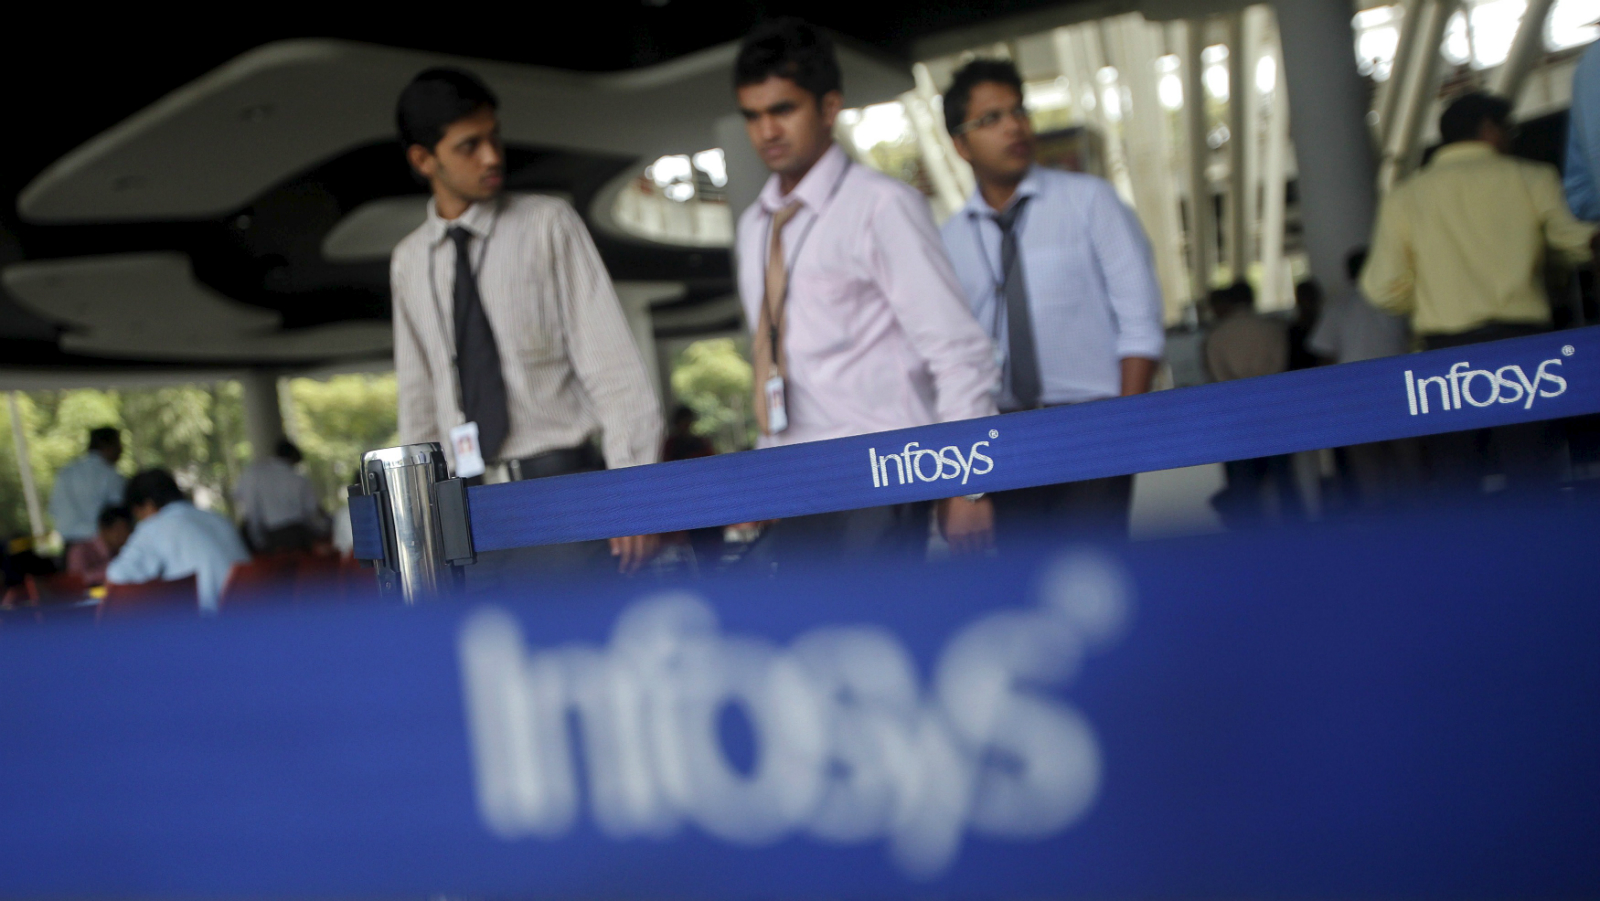 Employees of Indian software company Infosys walk past Infosys logos at their campus in the Electronic City area in Bangalore in this September 4, 2012 file photo.